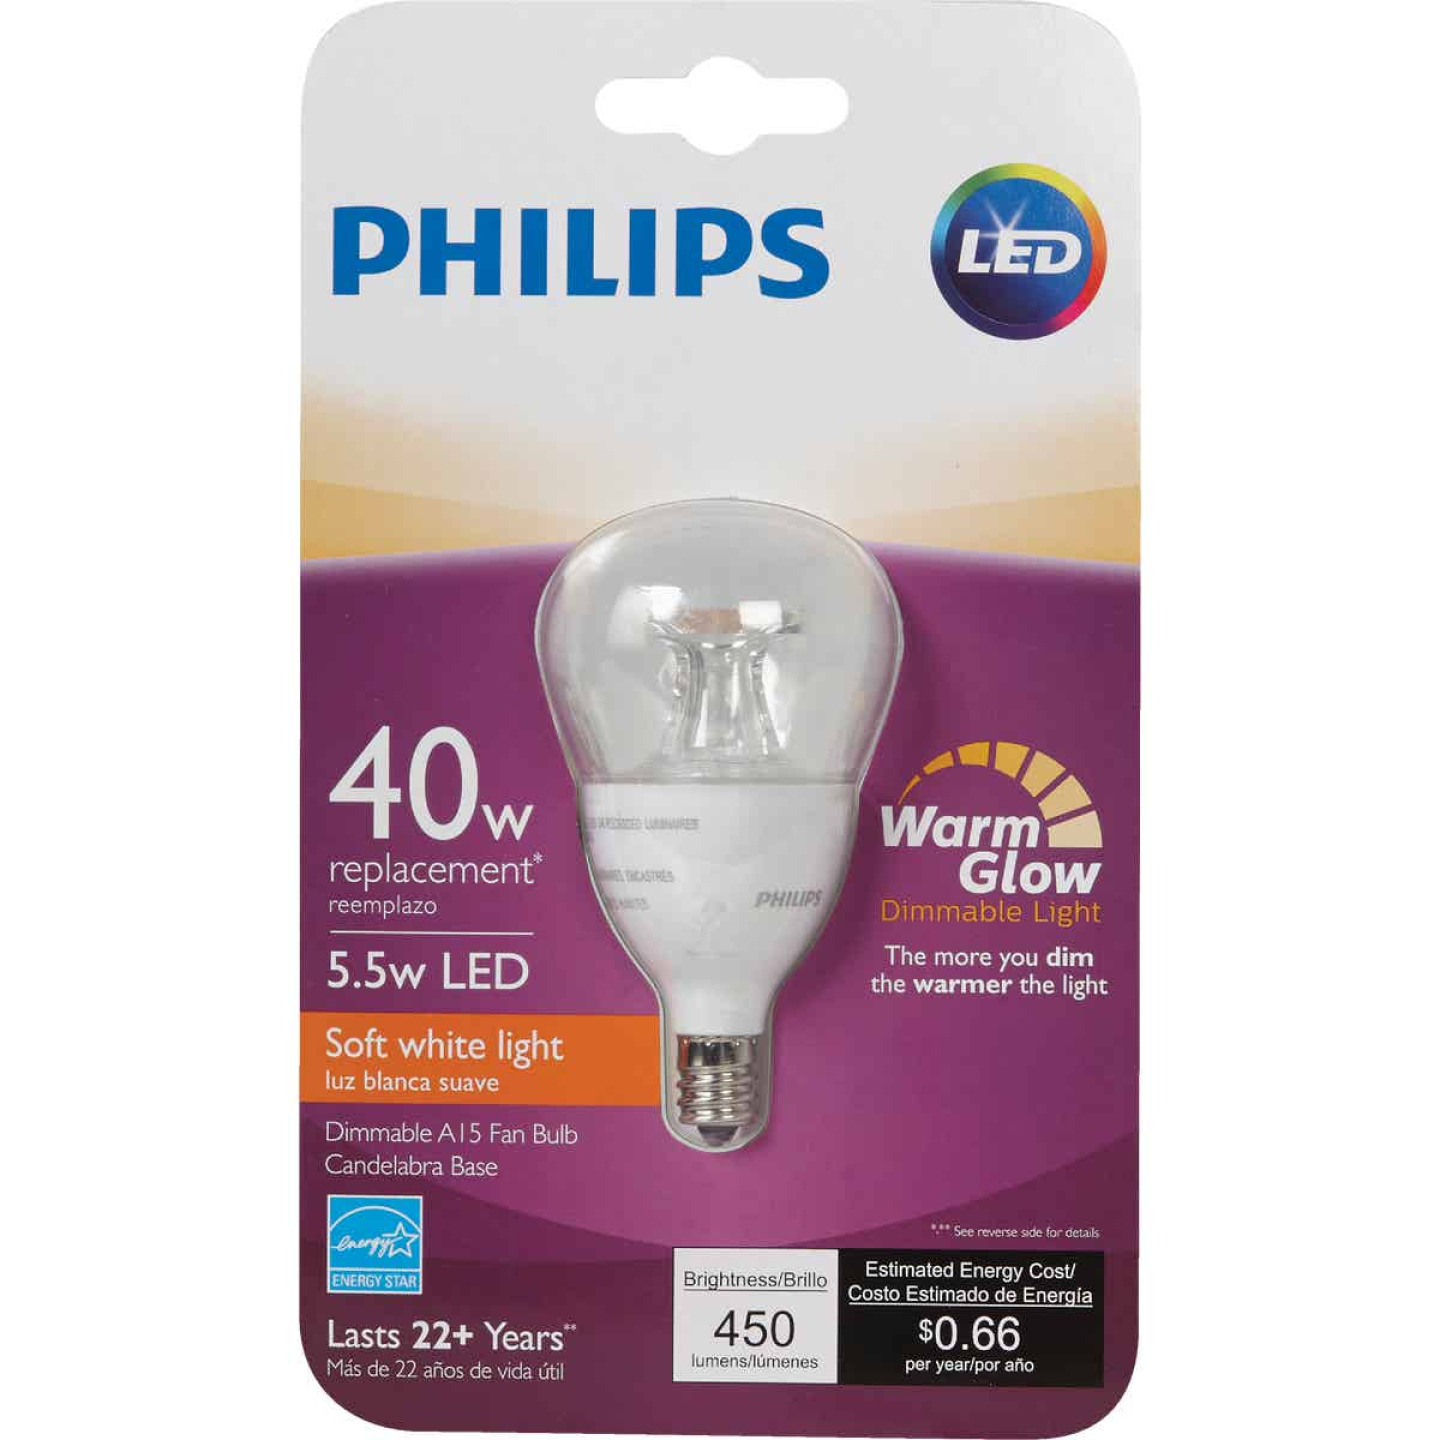 Philips Warm Glow 40W Equivalent Soft White A15 Candelabra Dimmable LED Light Bulb Image 2